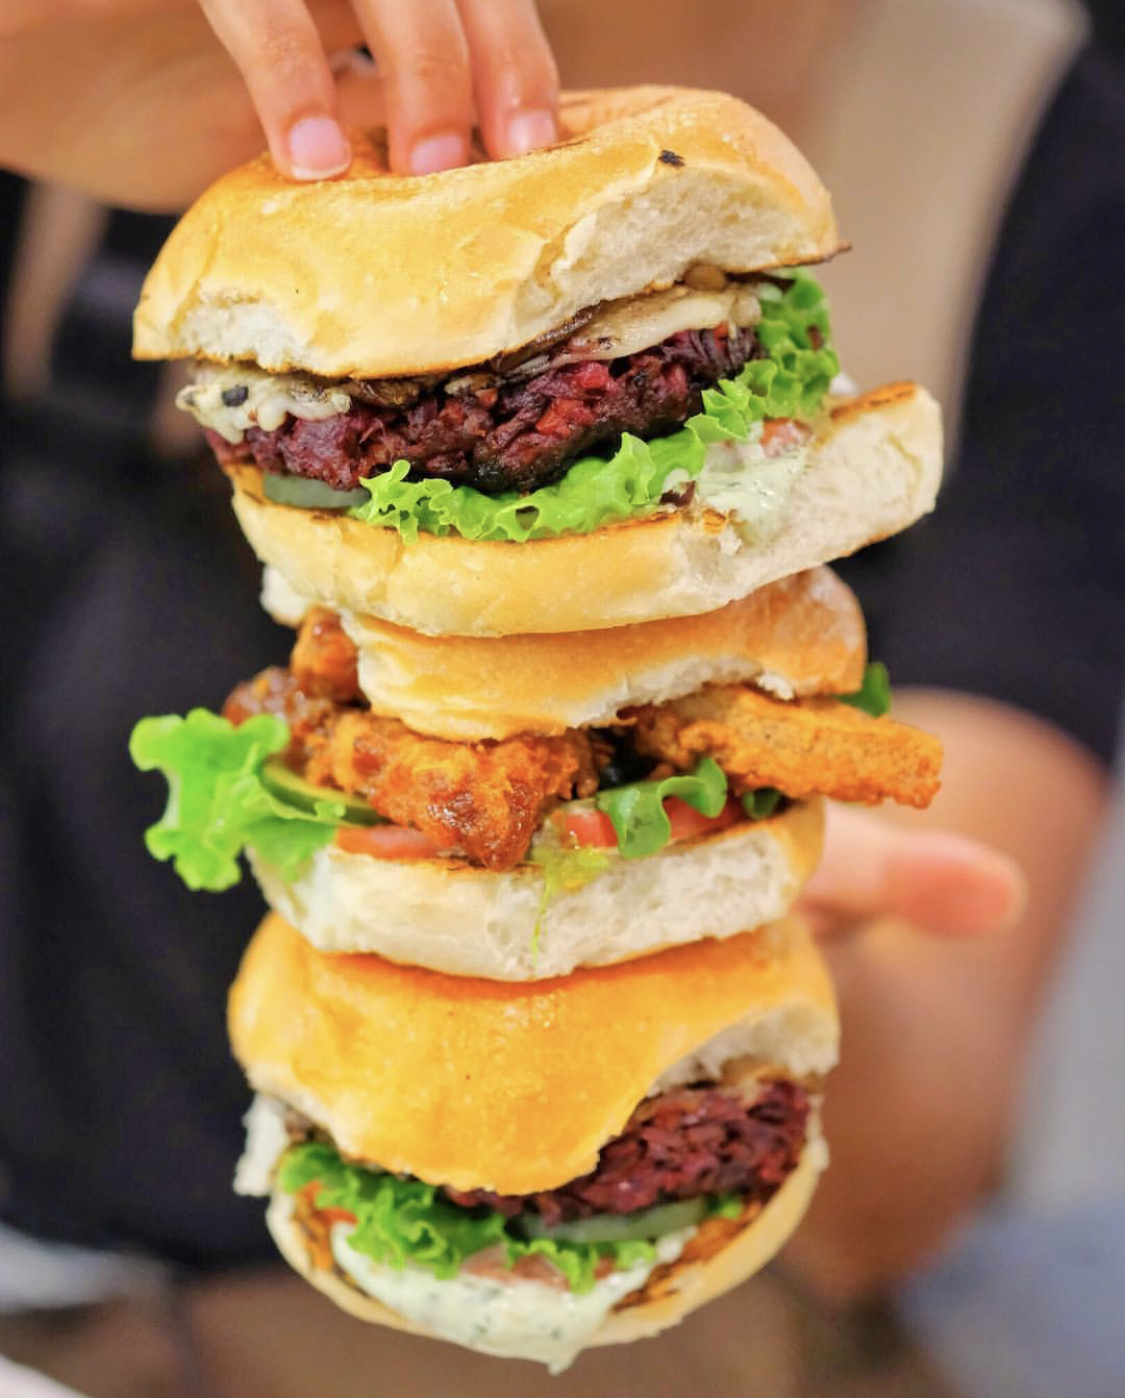 Phatty Meat Burgers + Hot Nashville Tofu Sandwich